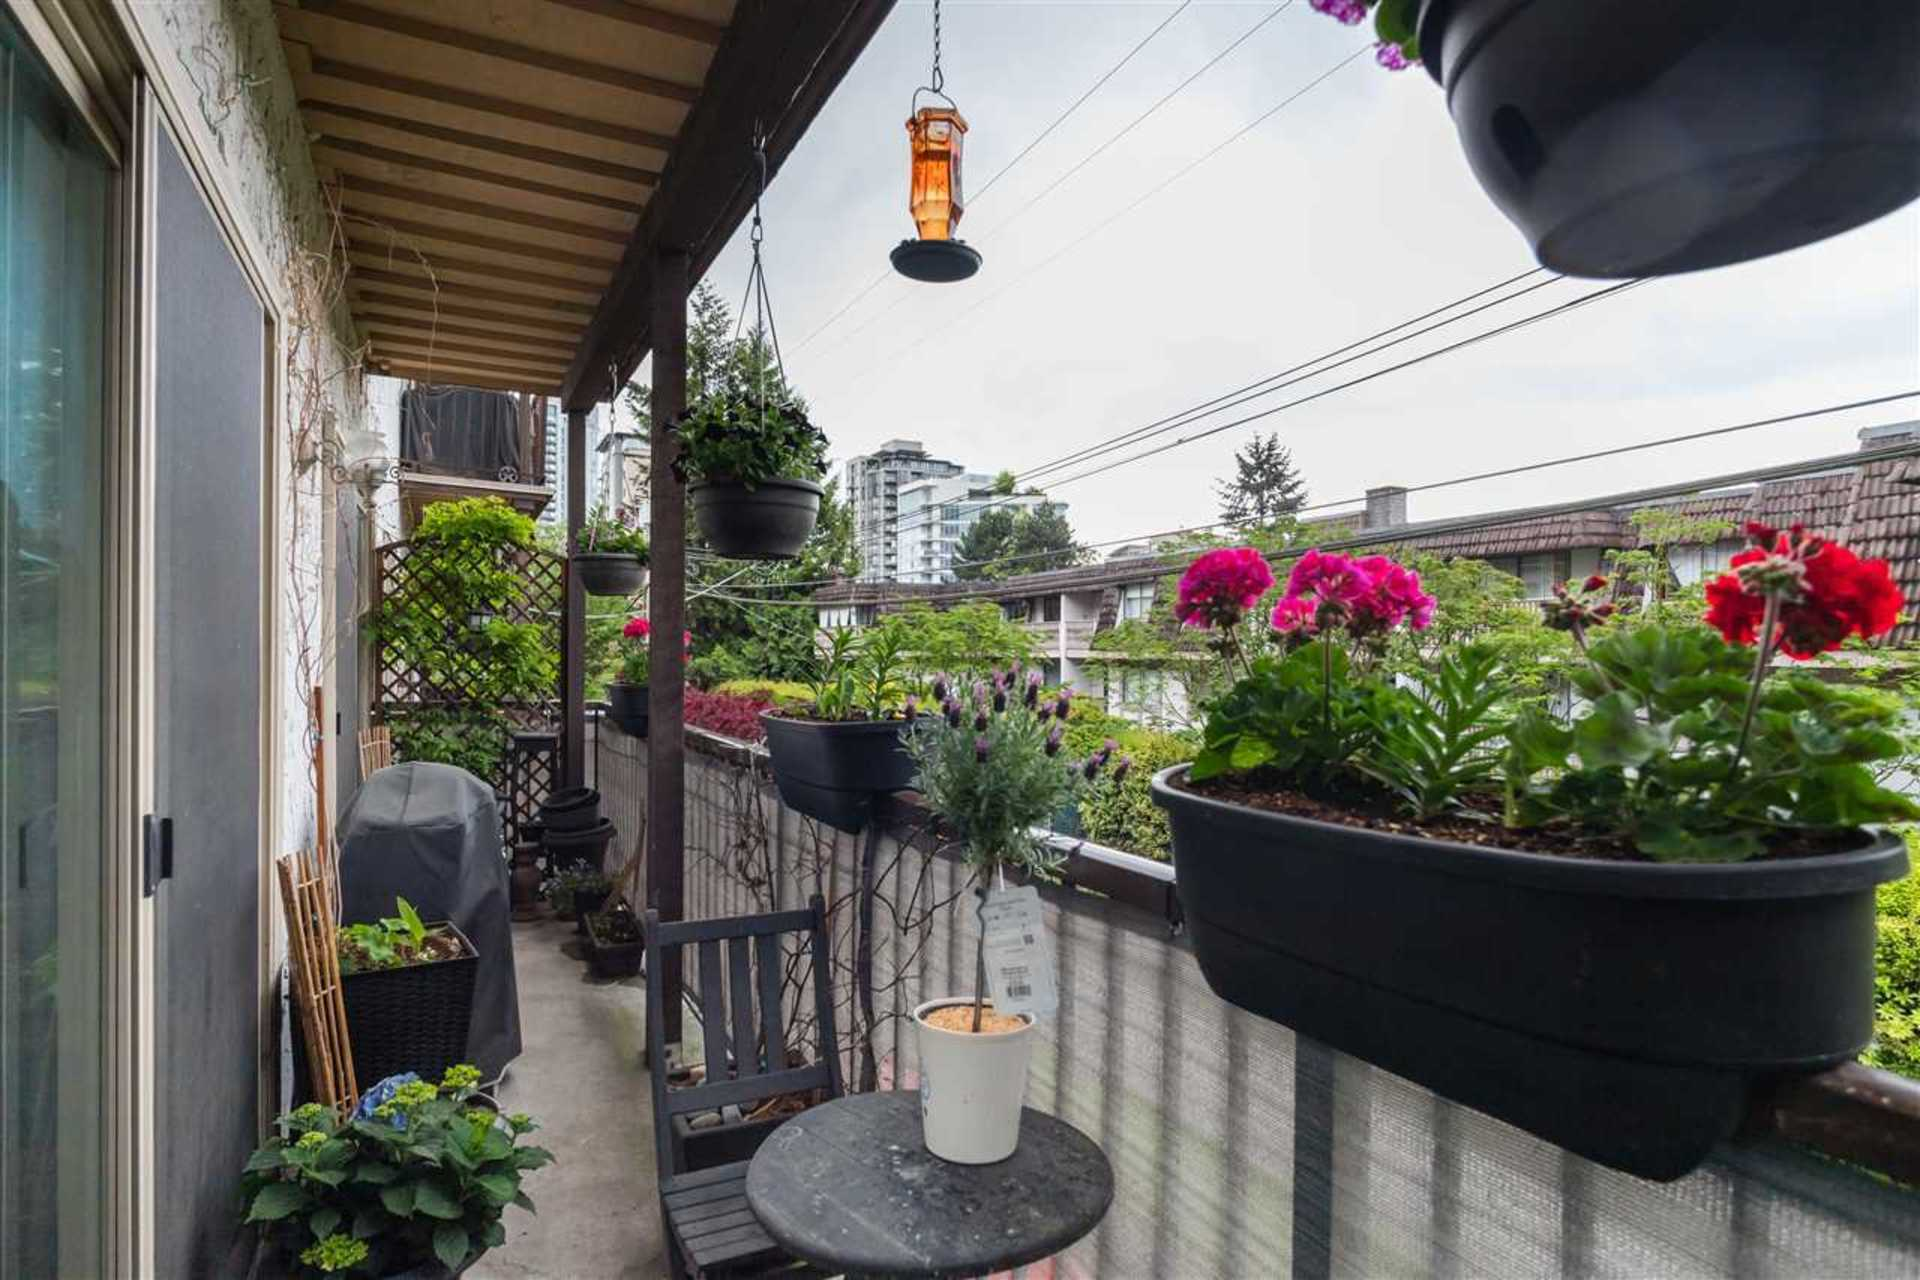 225-w-3rd-street-lower-lonsdale-north-vancouver-17 at 103 - 225 W 3rd Street, Lower Lonsdale, North Vancouver